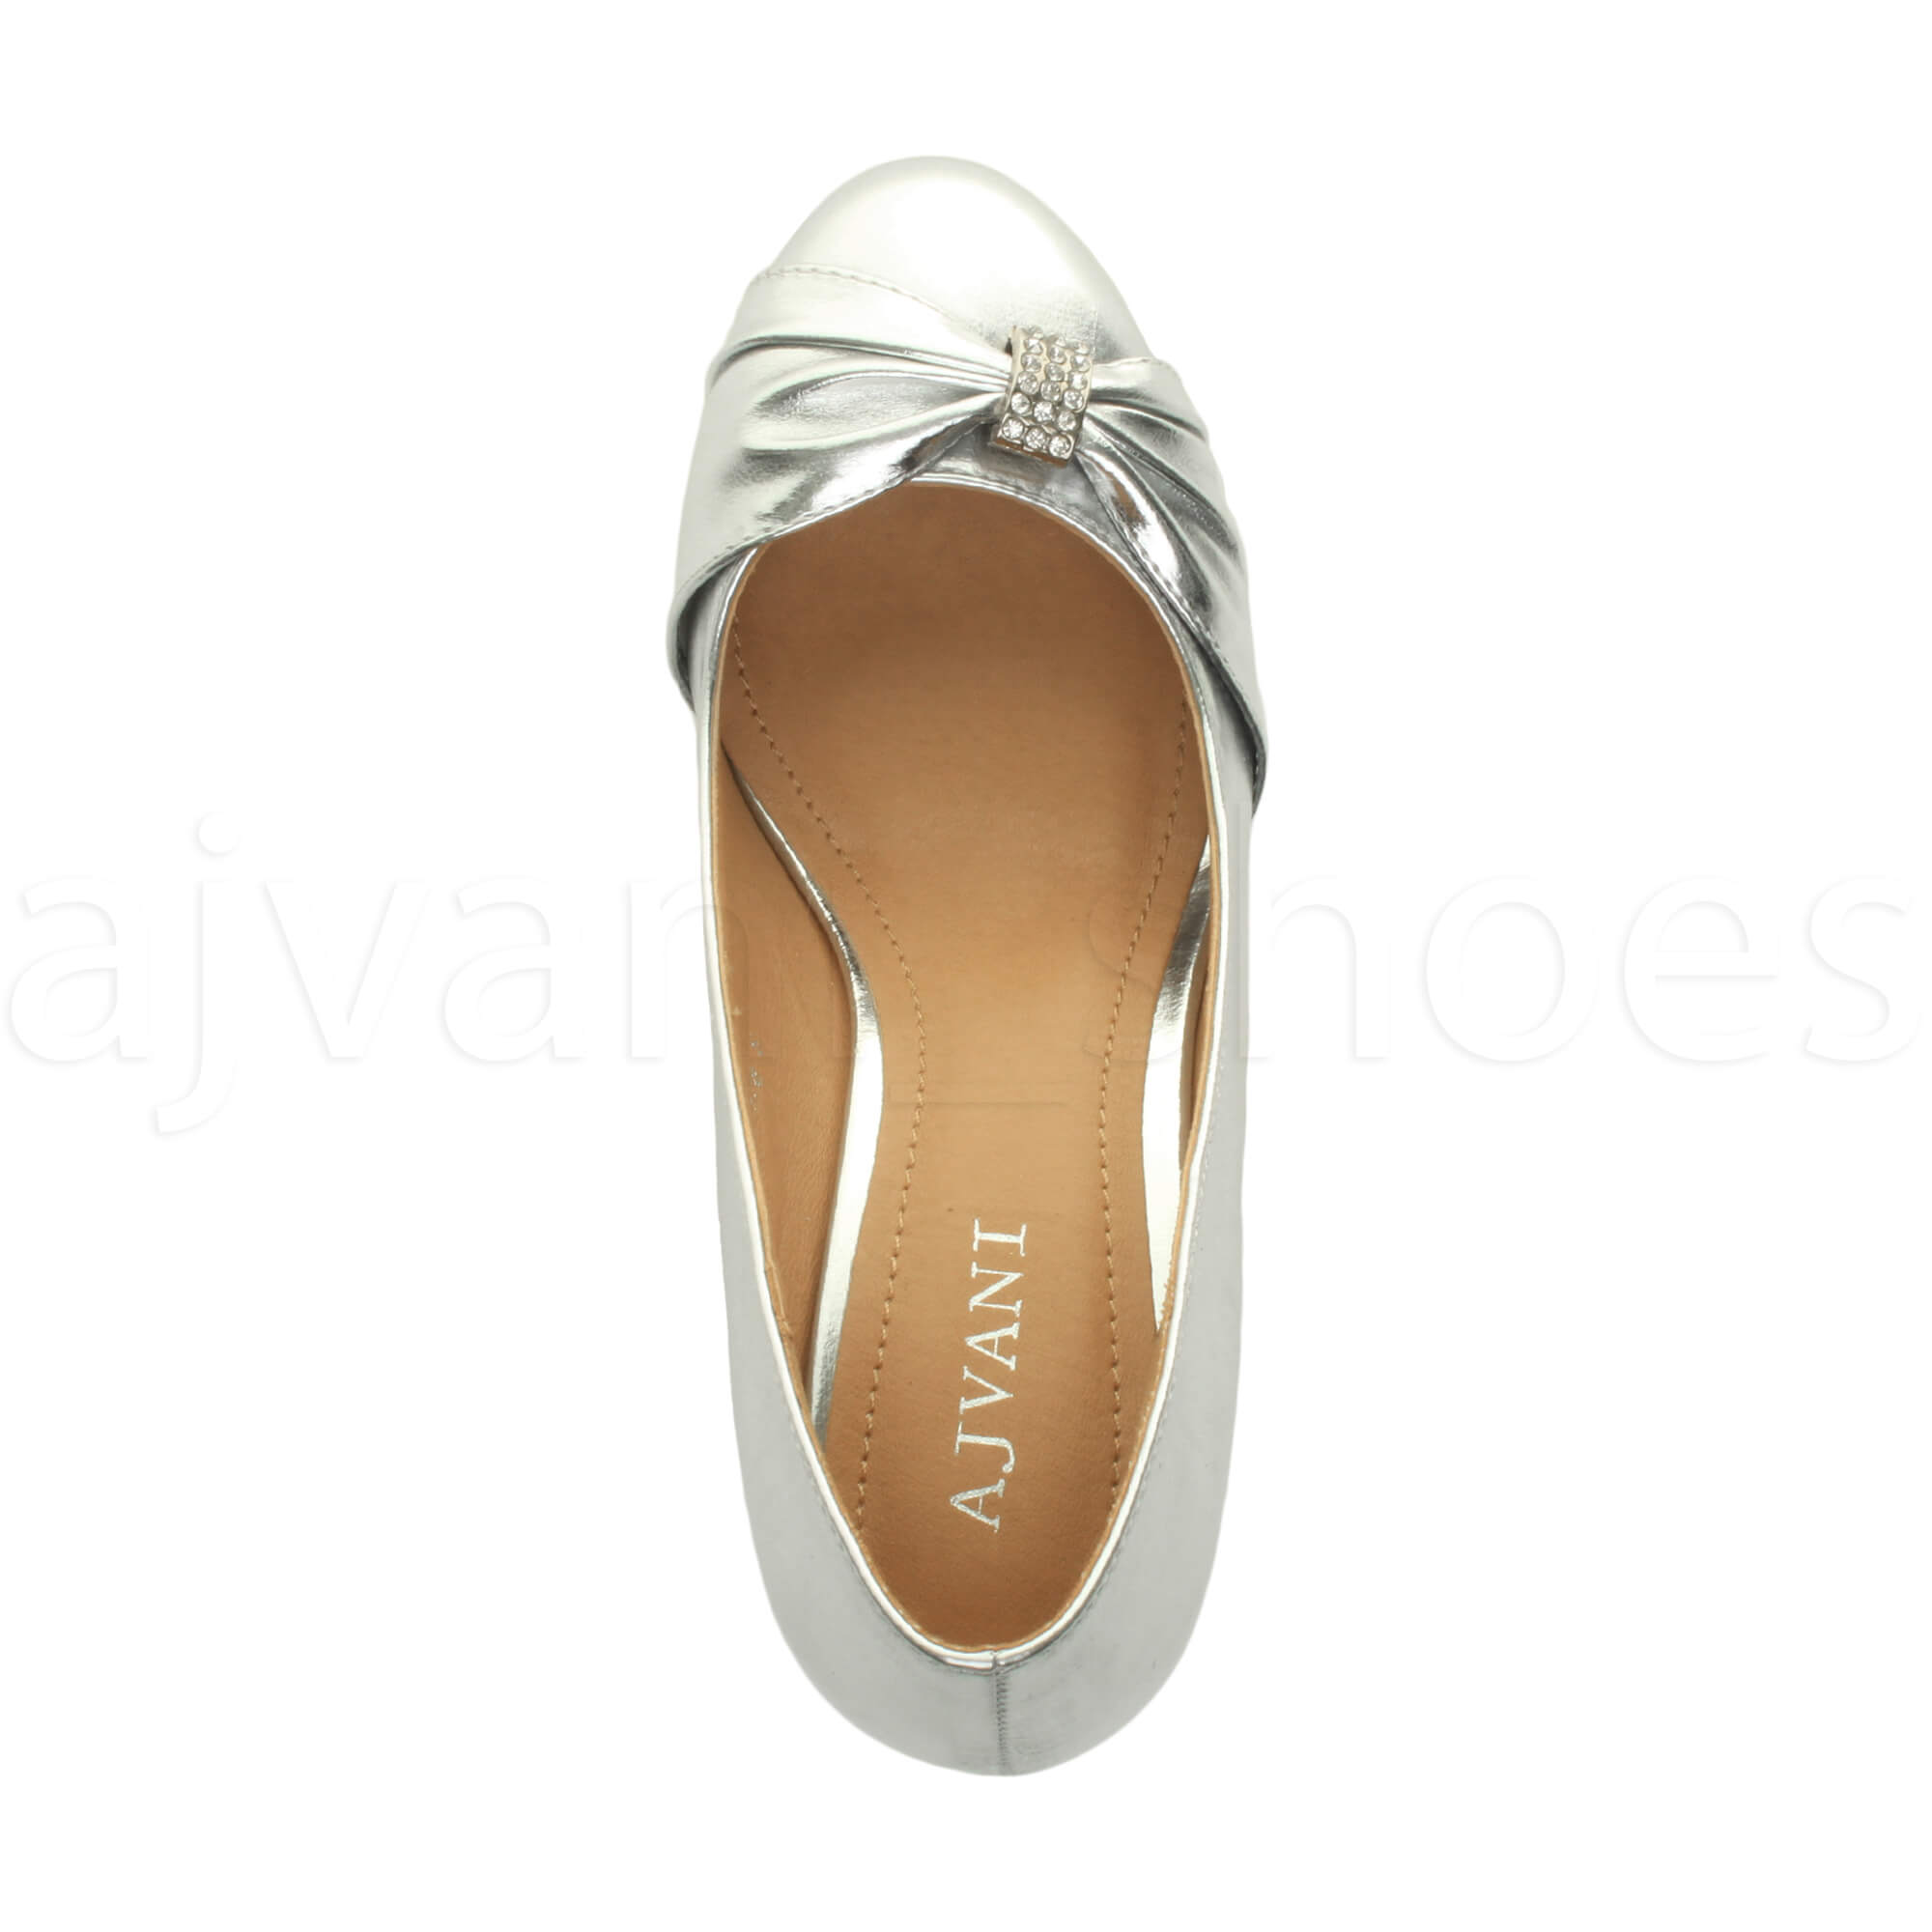 WOMENS-LADIES-MID-HEEL-RUCHED-DIAMANTE-WEDDING-PROM-EVENING-COURT-SHOES-SIZE thumbnail 88